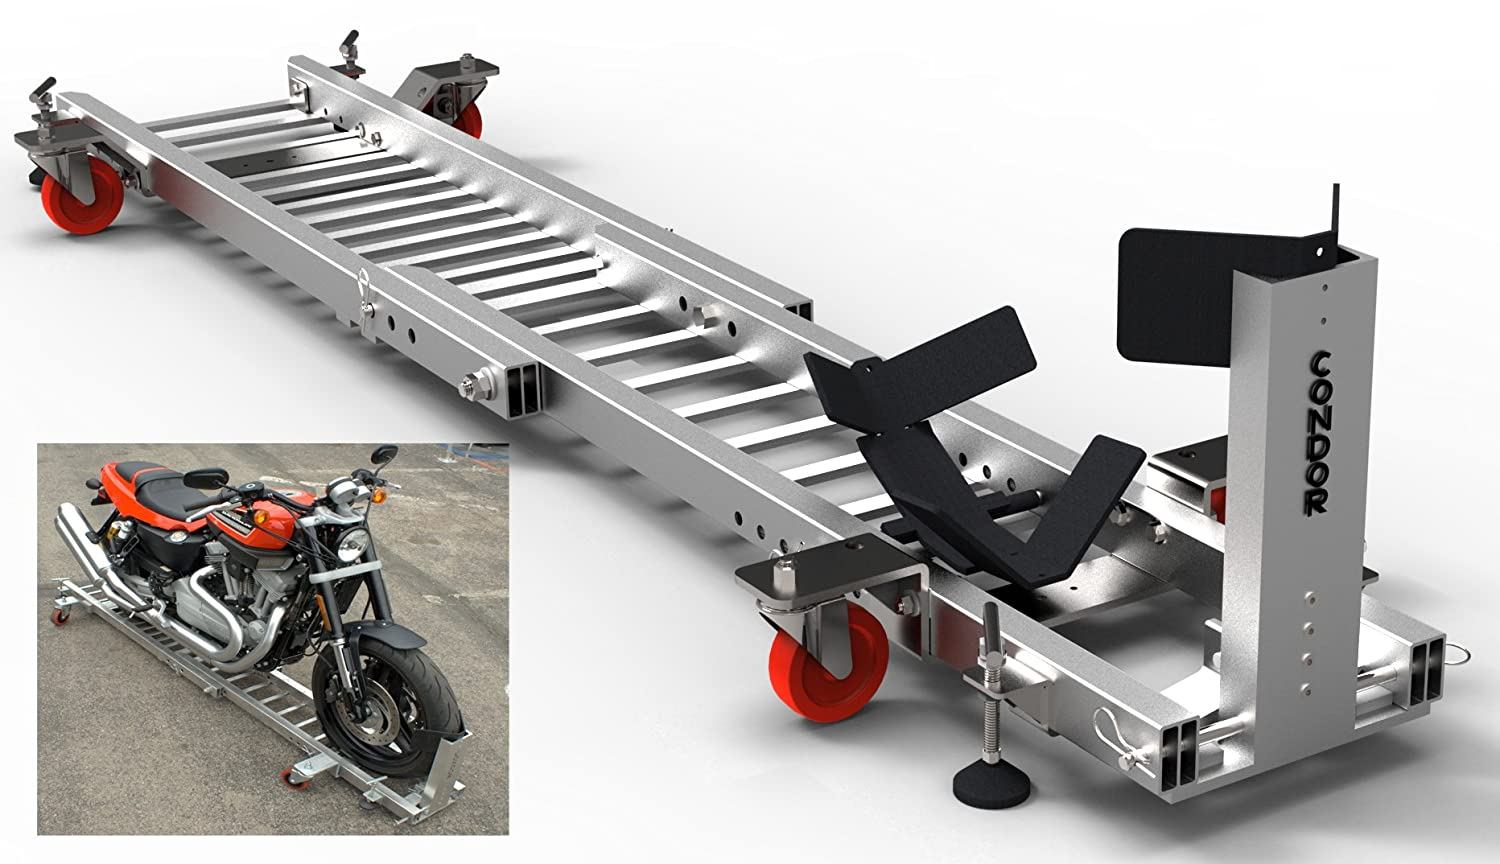 Trailer Stand Condor Motorcycle Garage Dolly for Wheel Chock